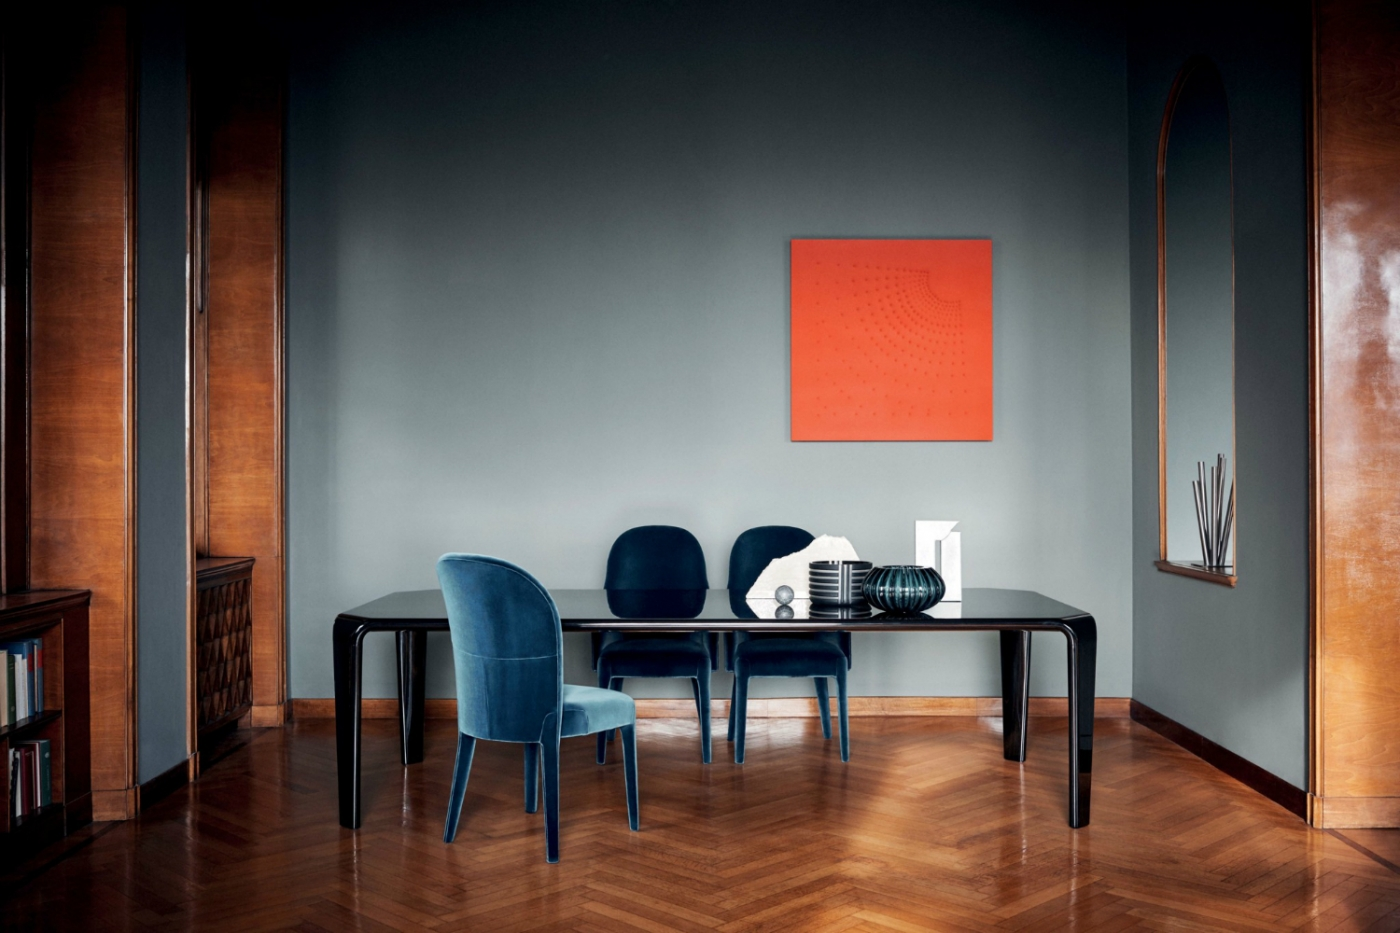 modern dining chairs 10 Best Modern Dining Chairs For Your Astonishing Home Design 10 Best Dining Chairs For Your Astonishing Home Design feature 1400x933